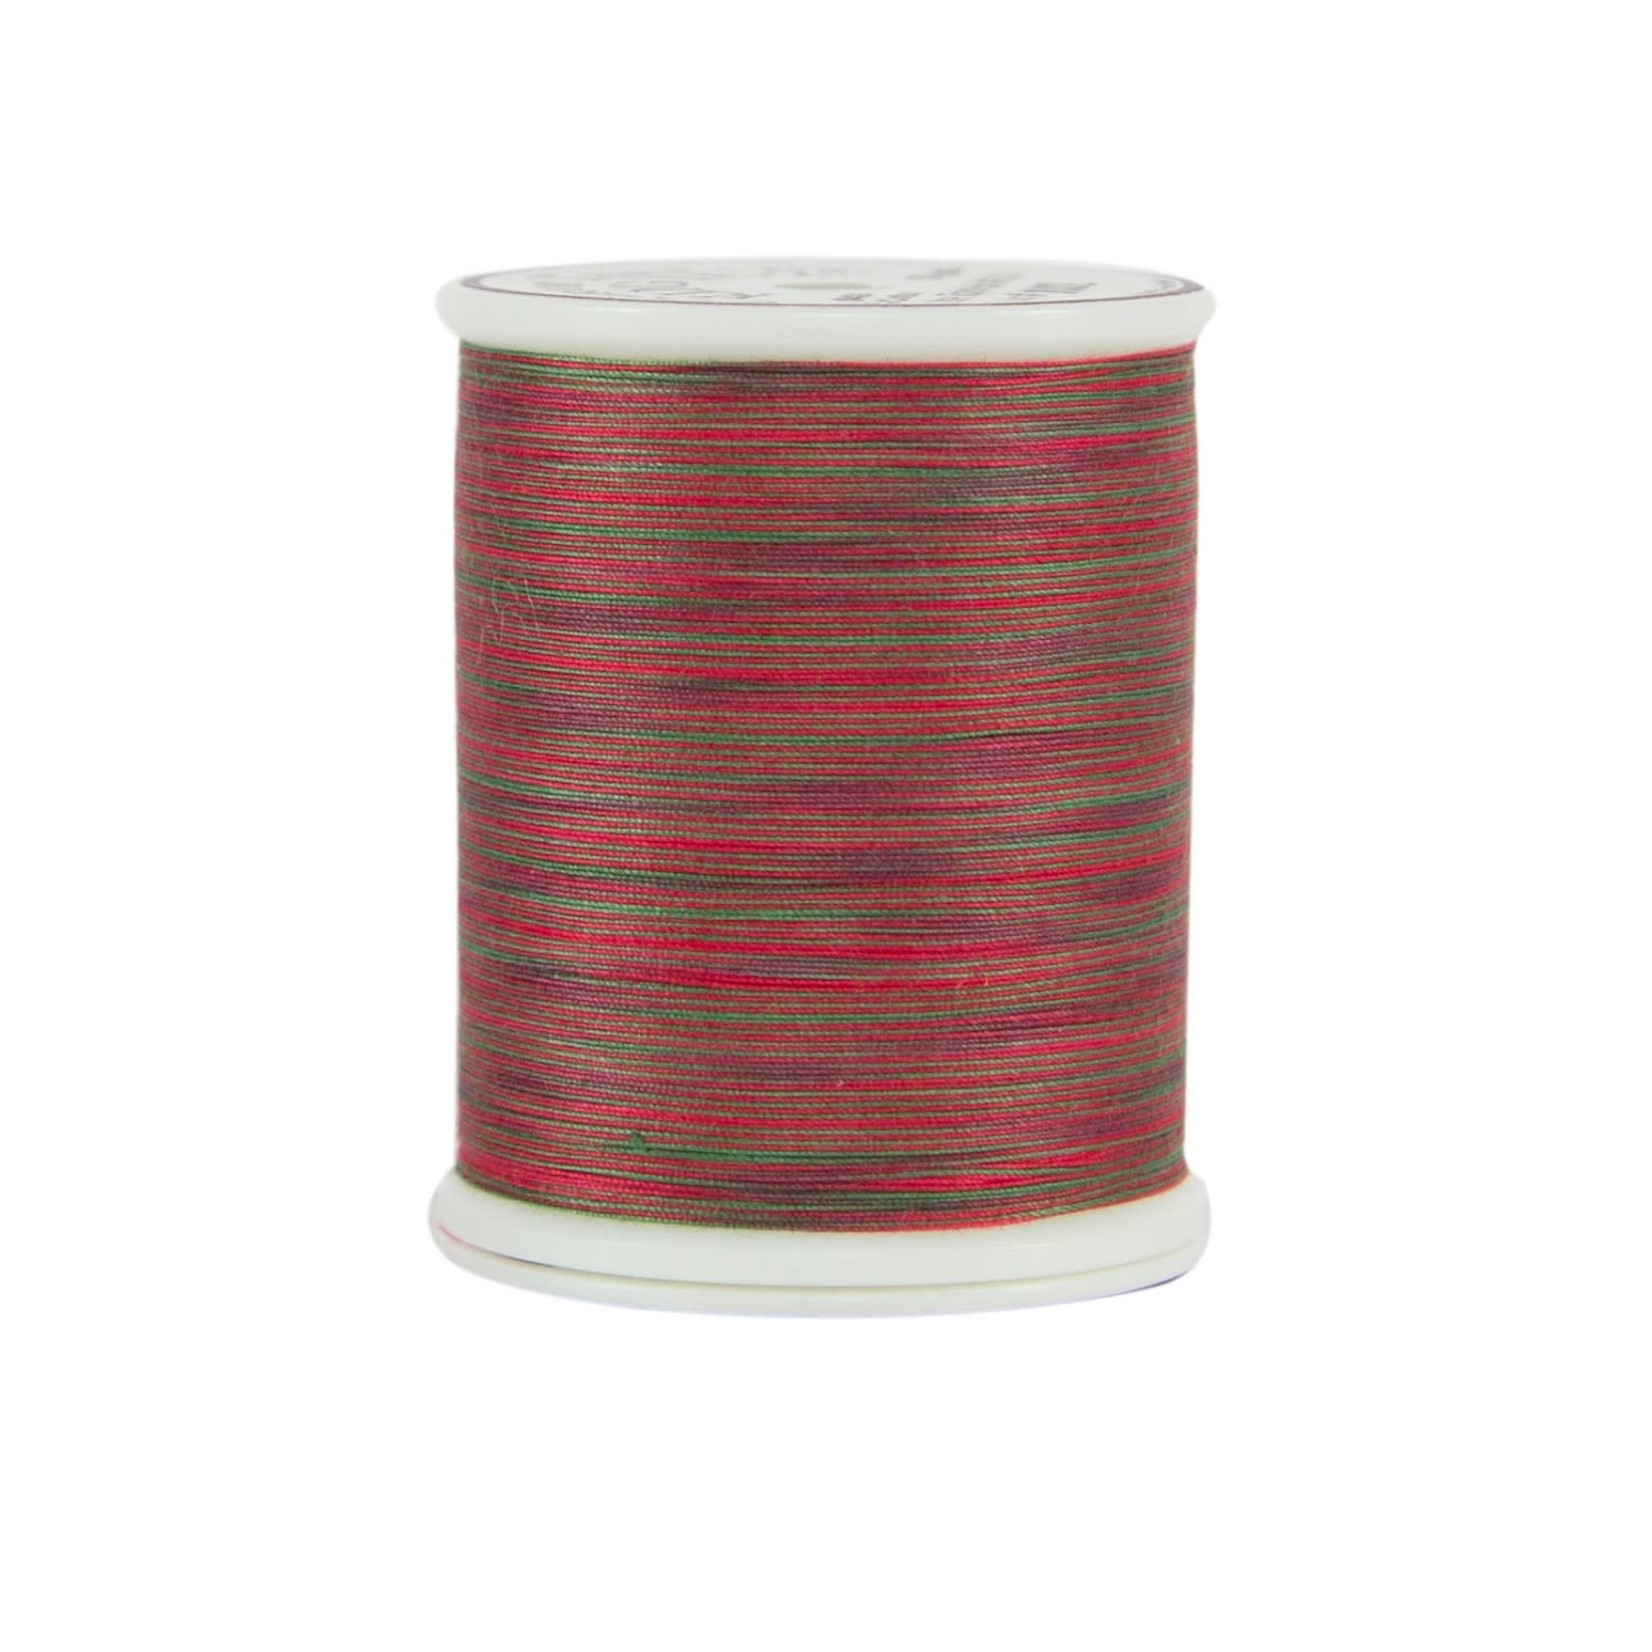 Superior Threads King Tut - #40 - 457 m - 1002 Holly and Ivy